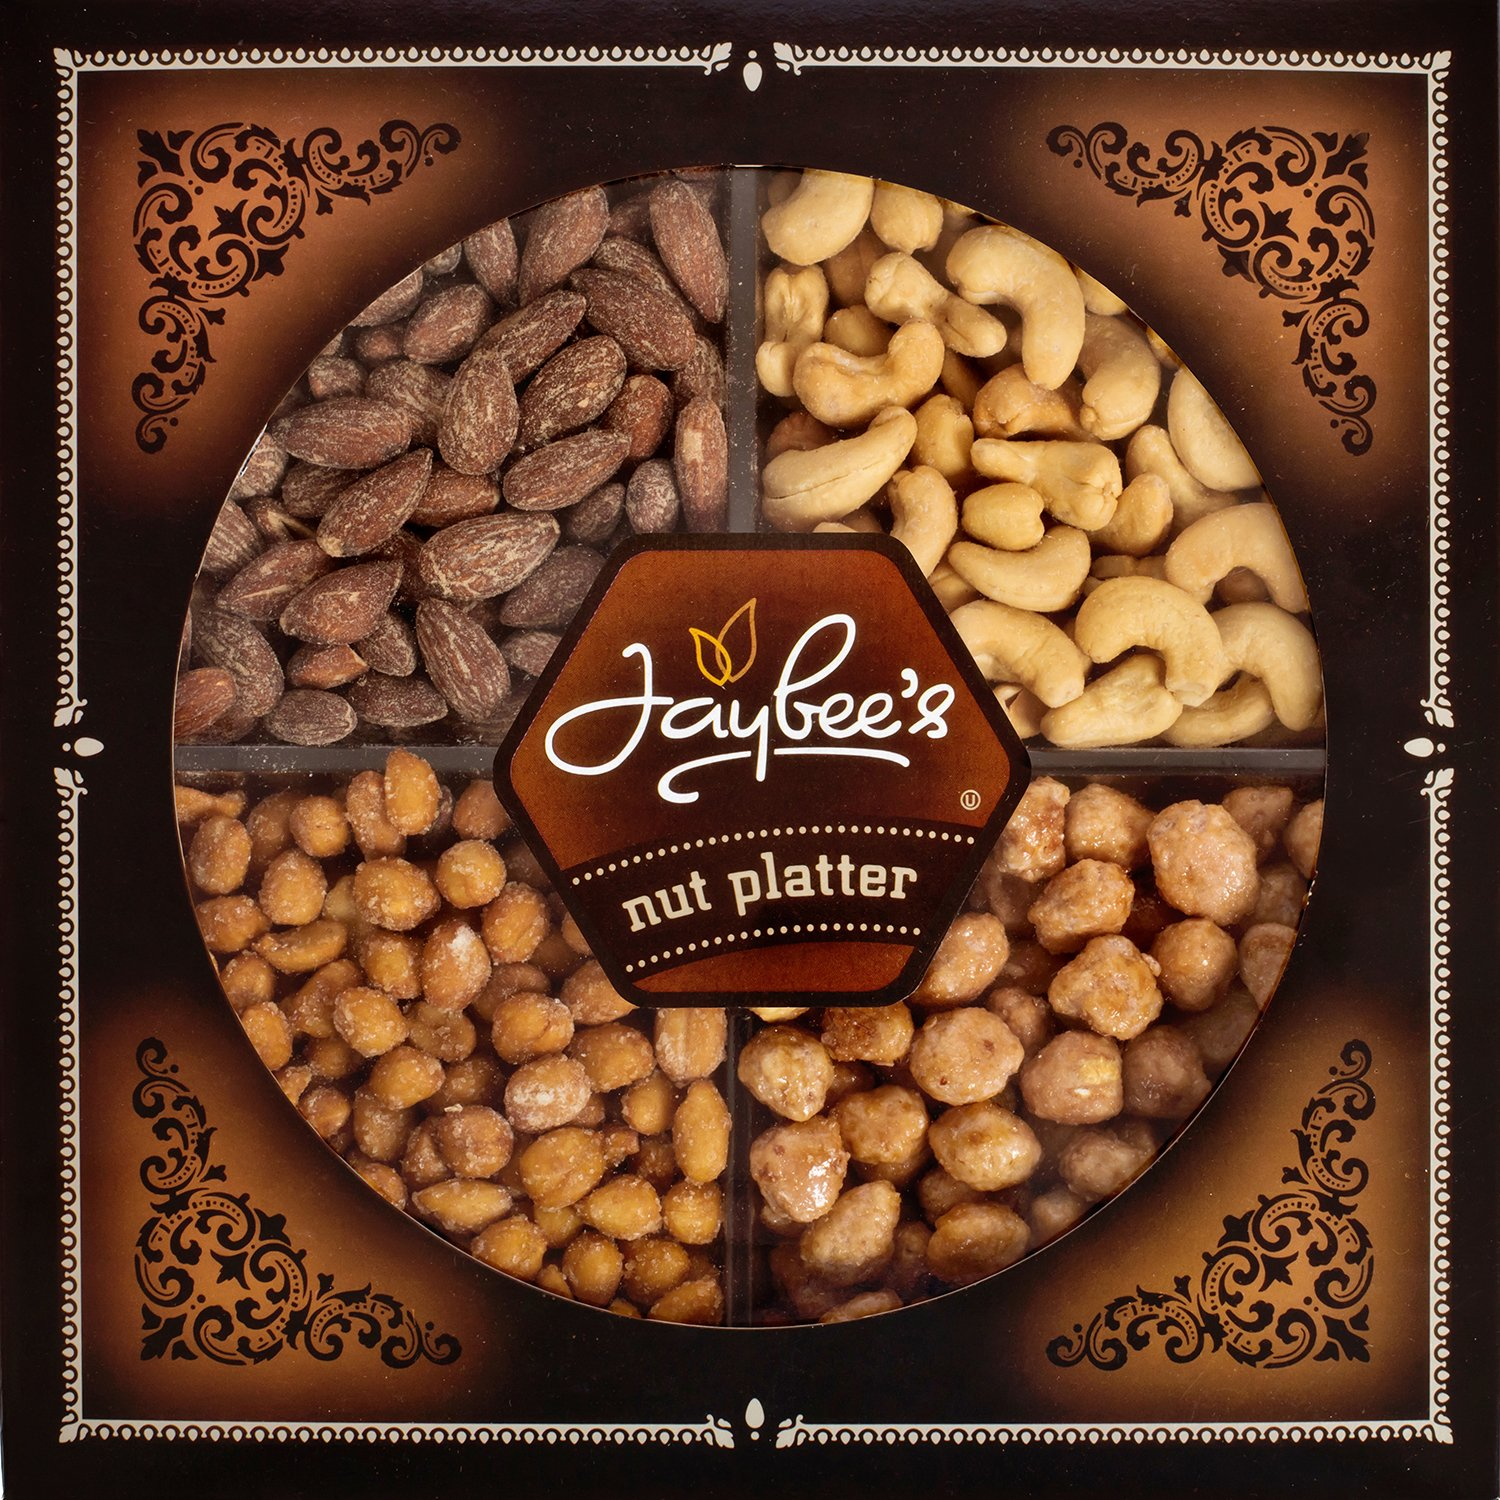 Jaybee's Nuts Gift Tray - Great Holiday, Corporate, Birthday Gift, or as Everyday Healthy Snack - Cashews, Smoked Almonds, Toffee & Honey Roasted Peanuts, Vegetarian Friendly and Kosher by Jaybee's (Image #4)